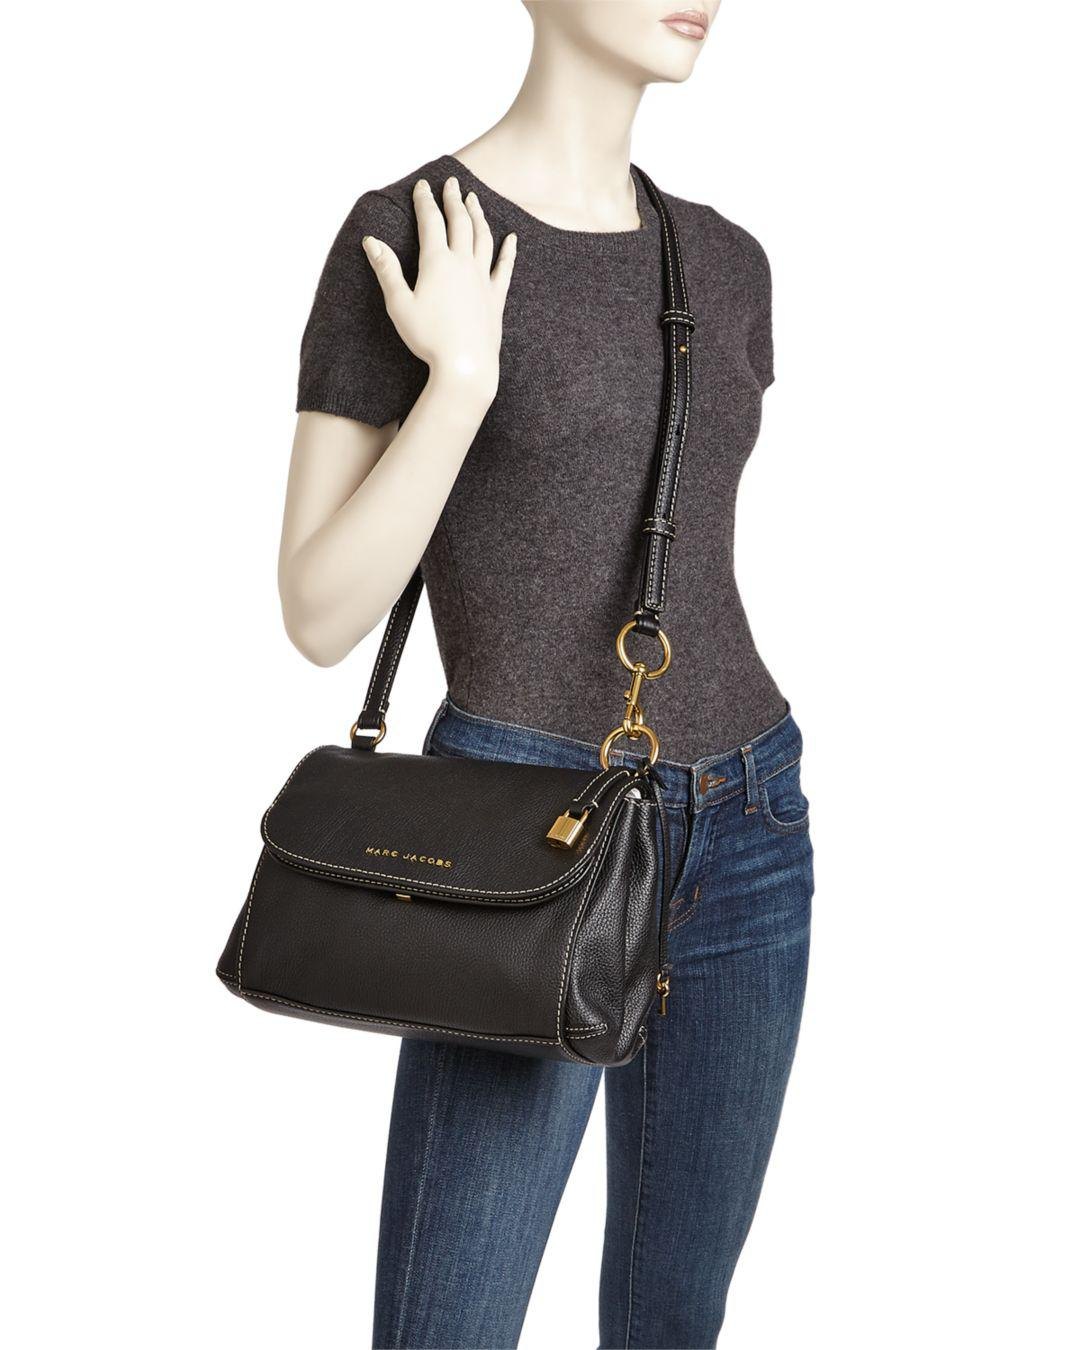 c05c23bd70ccc Lyst - Marc Jacobs The Boho Grind Leather Crossbody